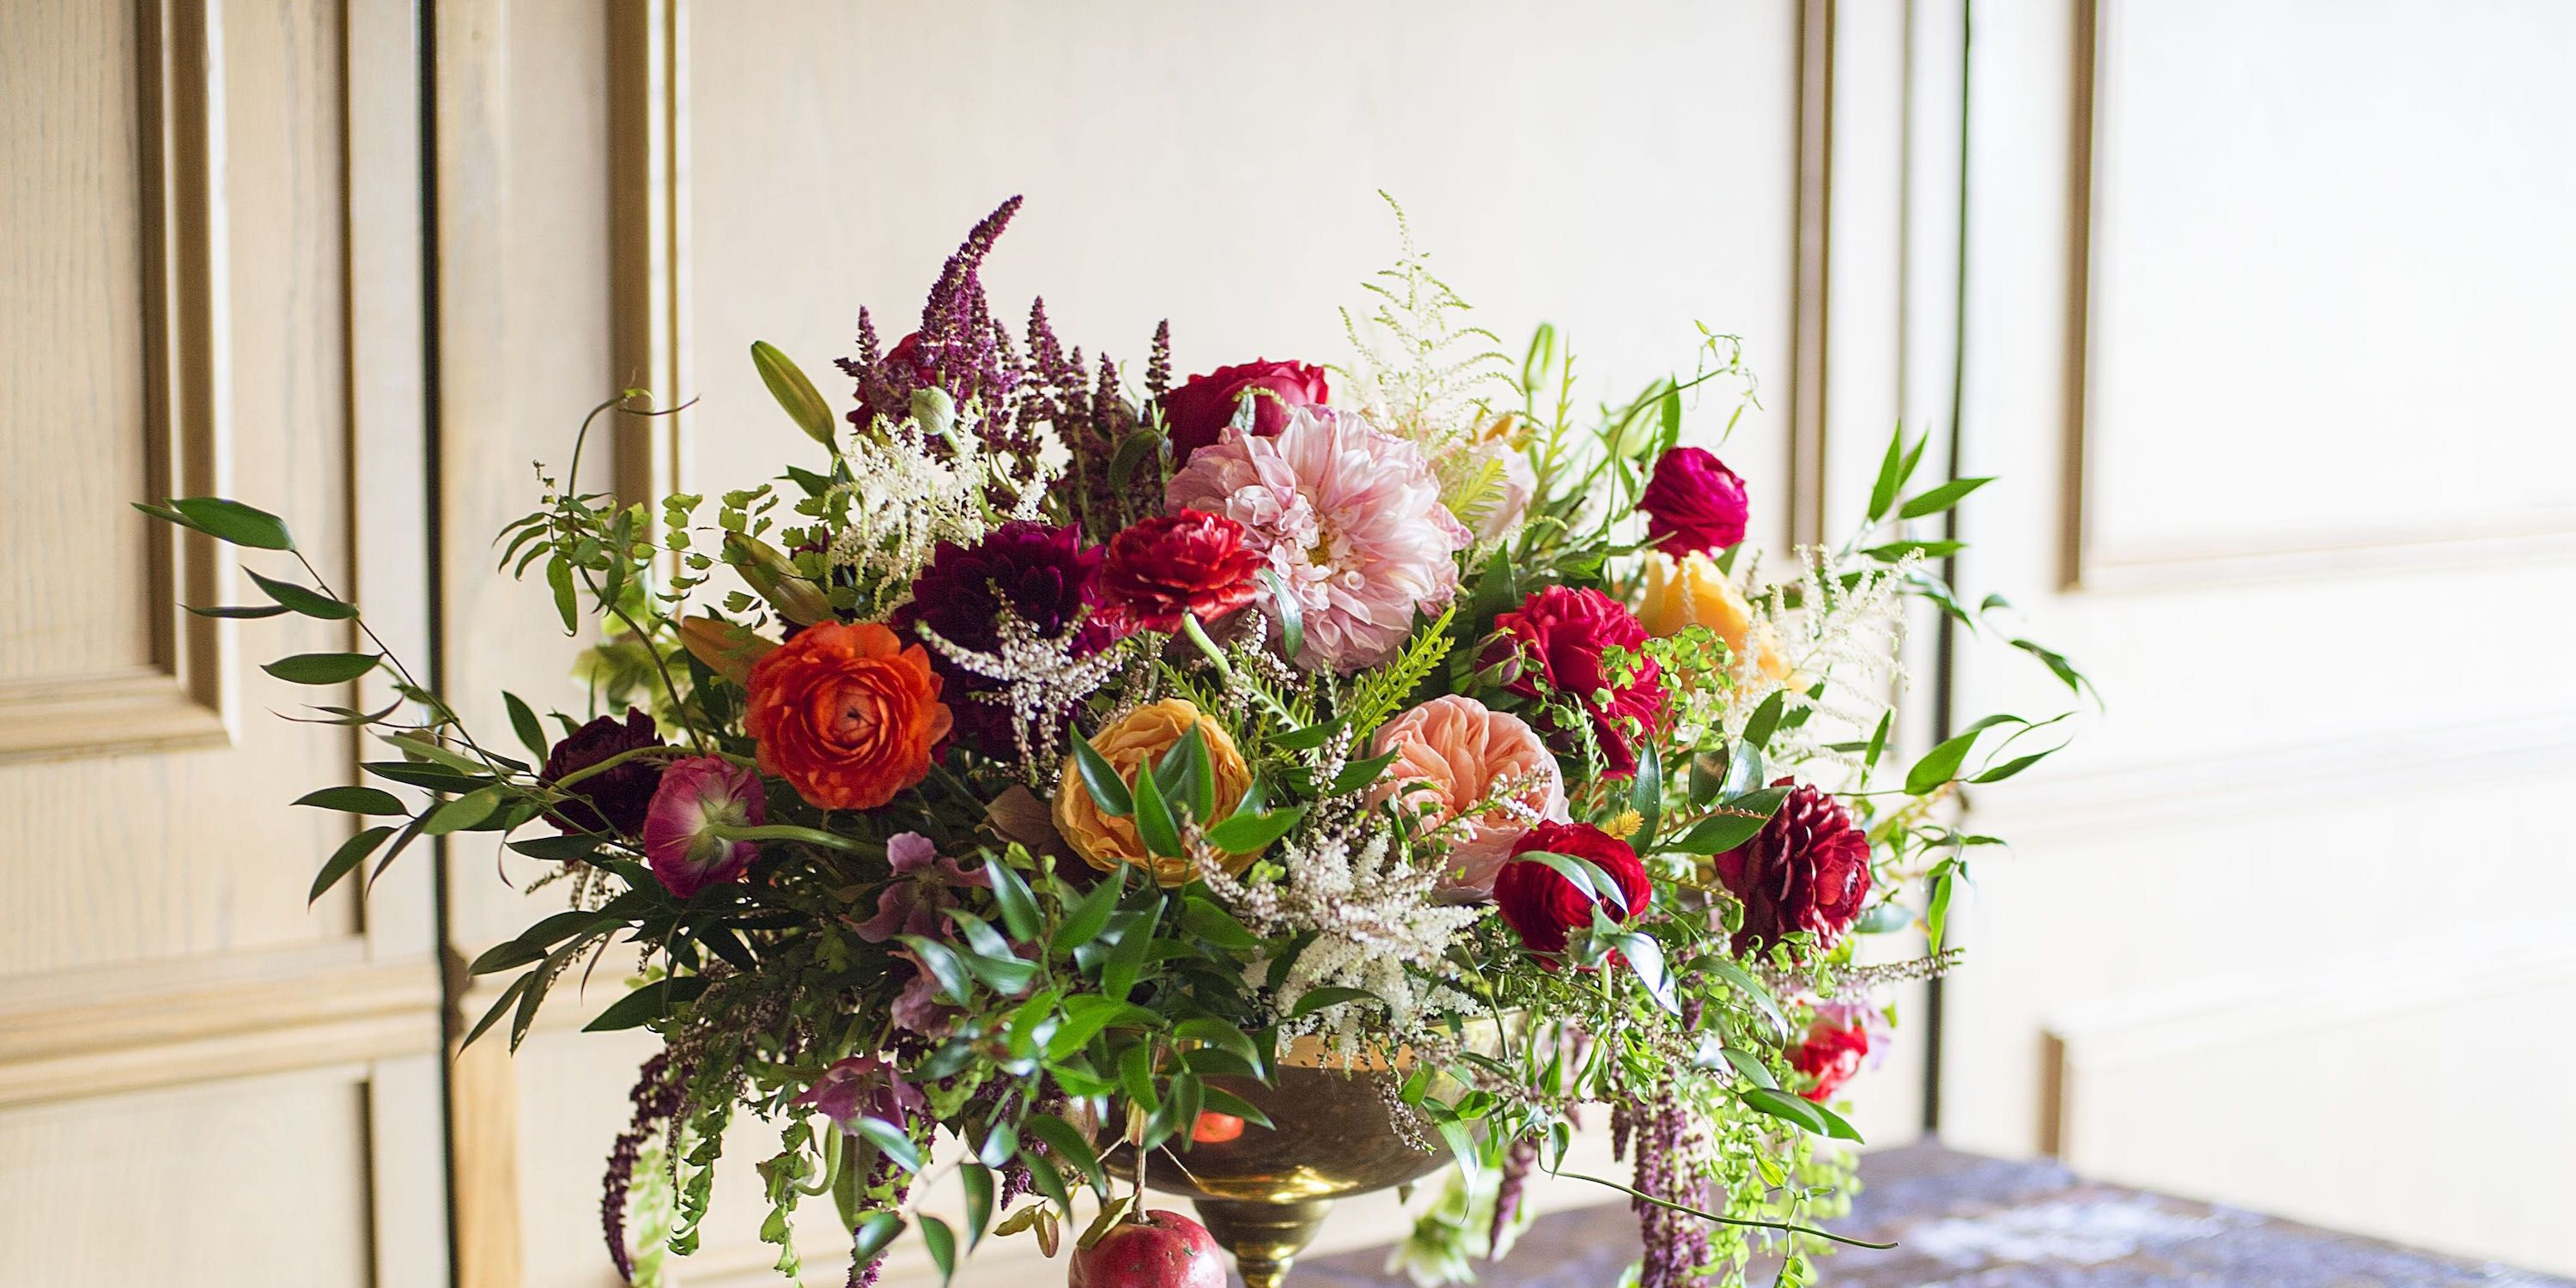 christmas flower arrangements  winter holiday flower arranging, Beautiful flower